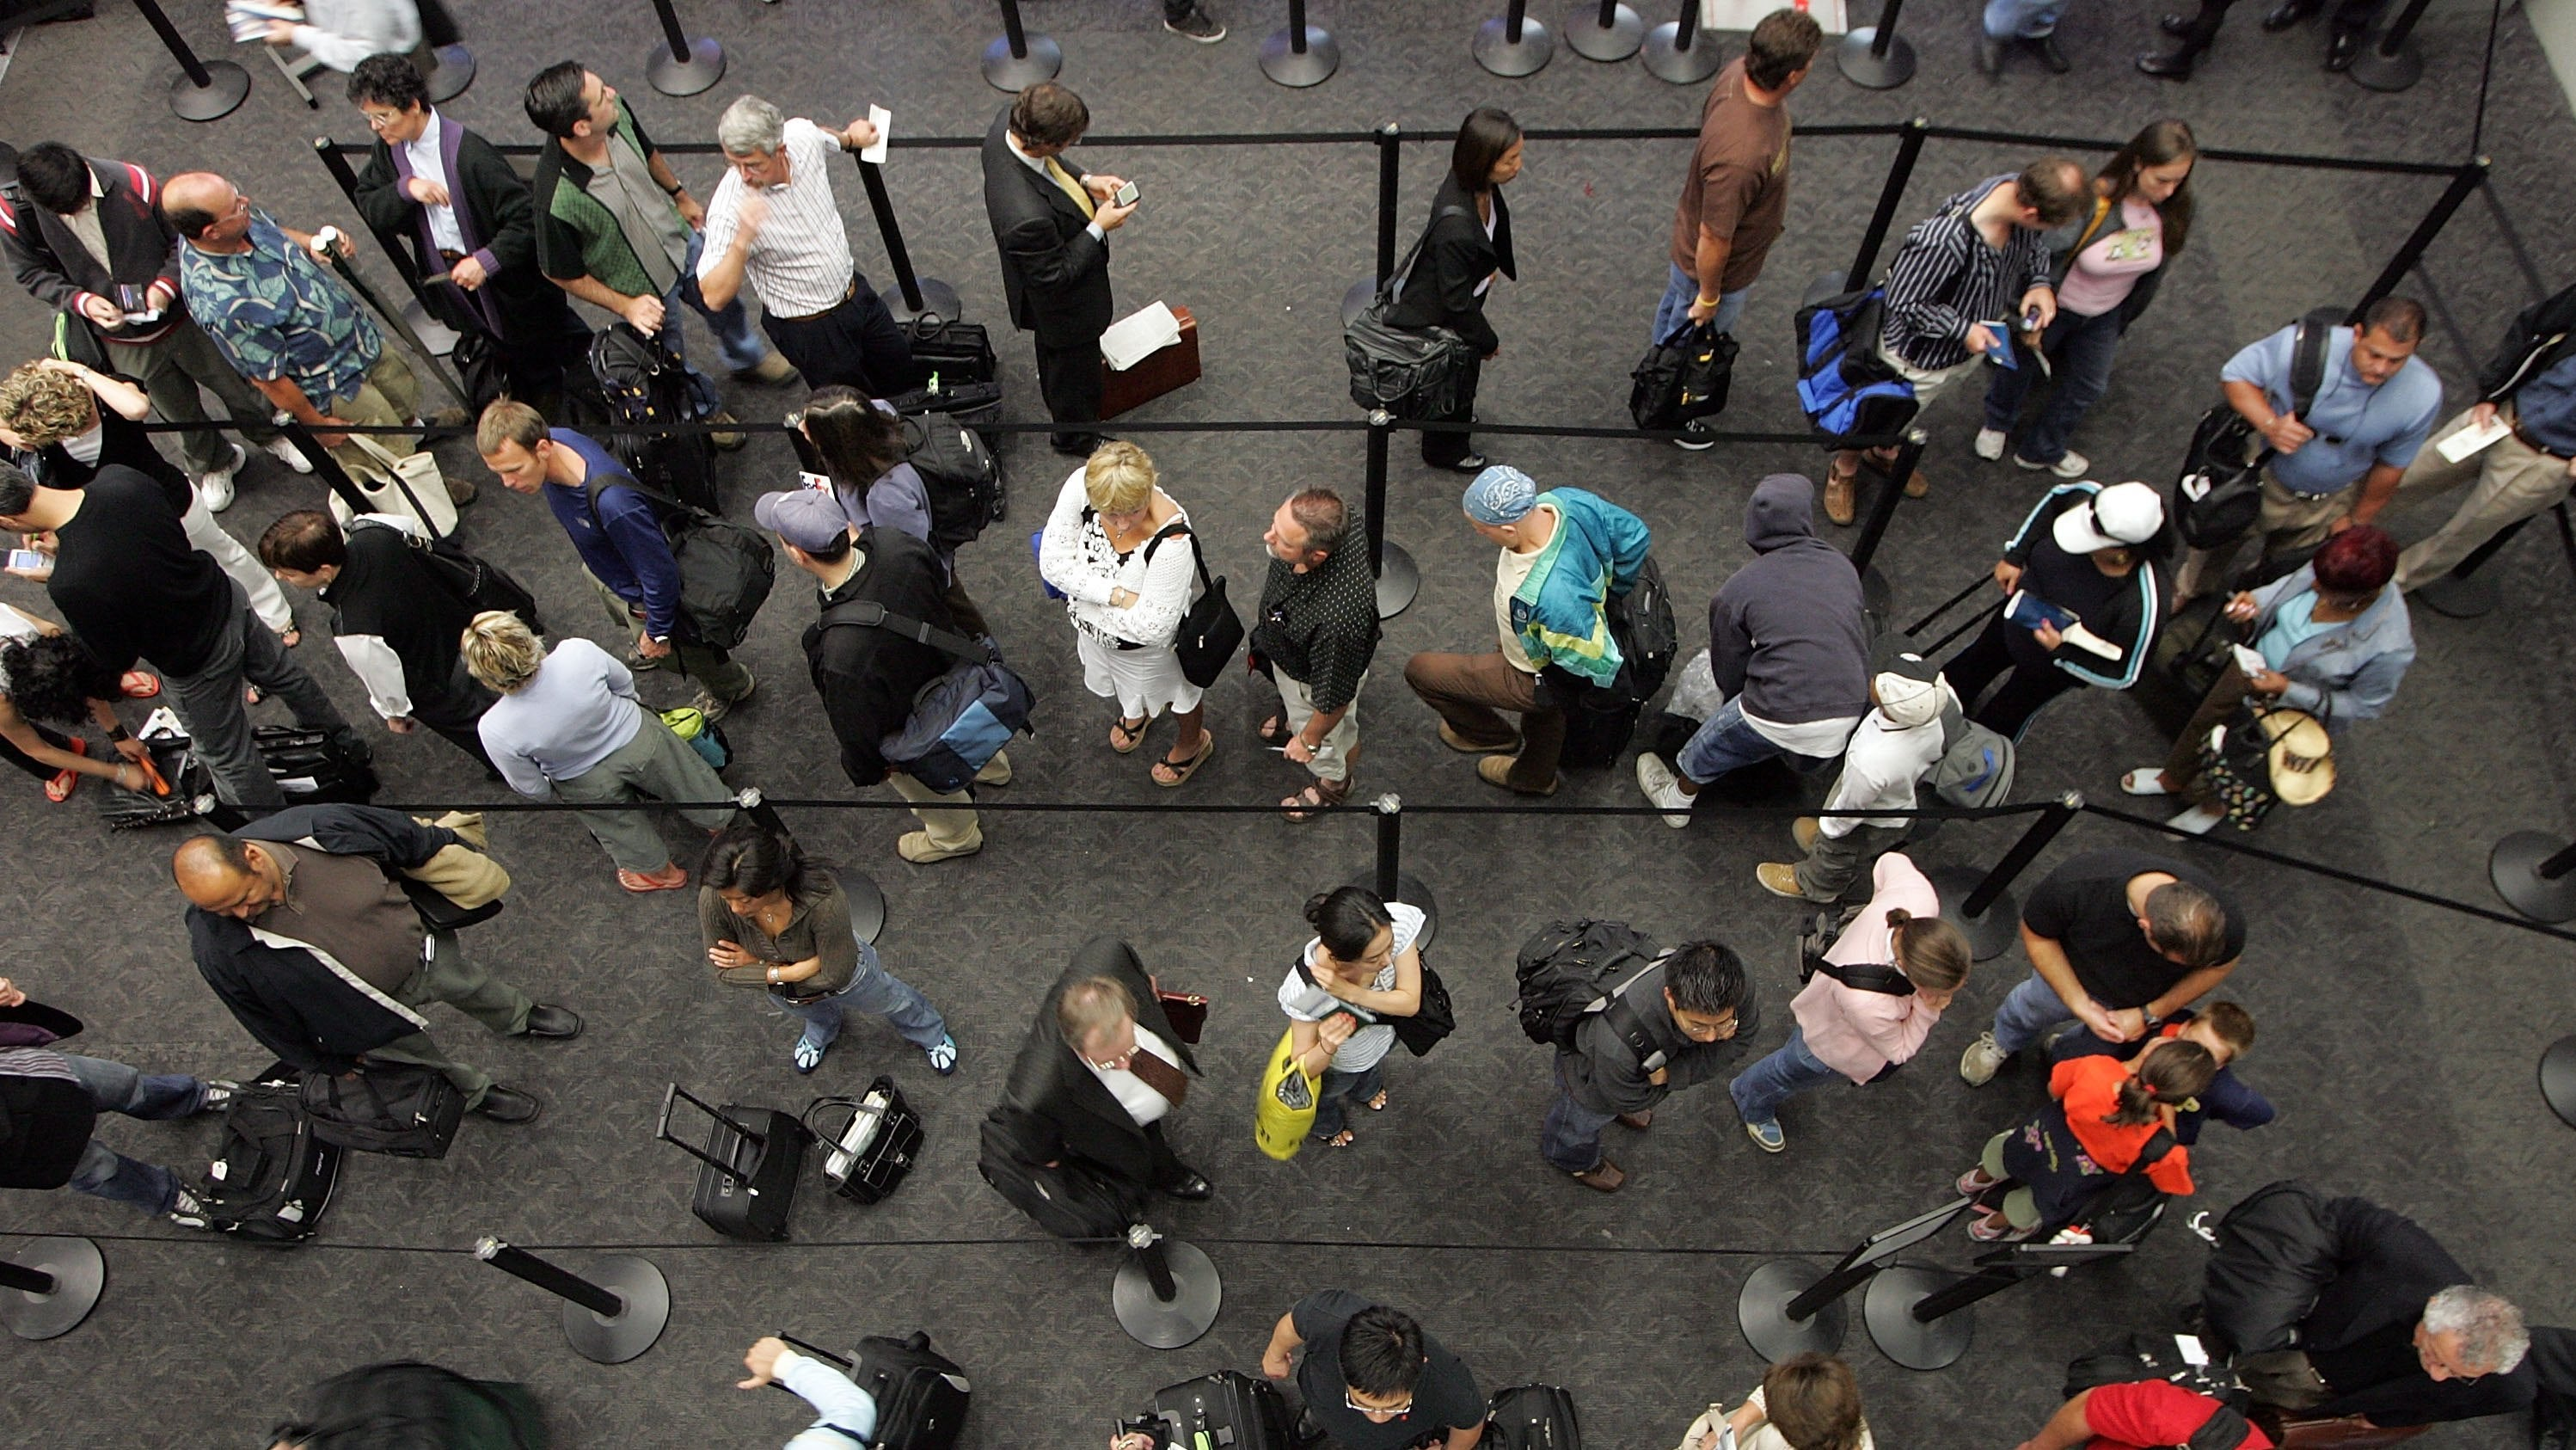 Make Sure Your Security Line Isn't Closed Before A Flight